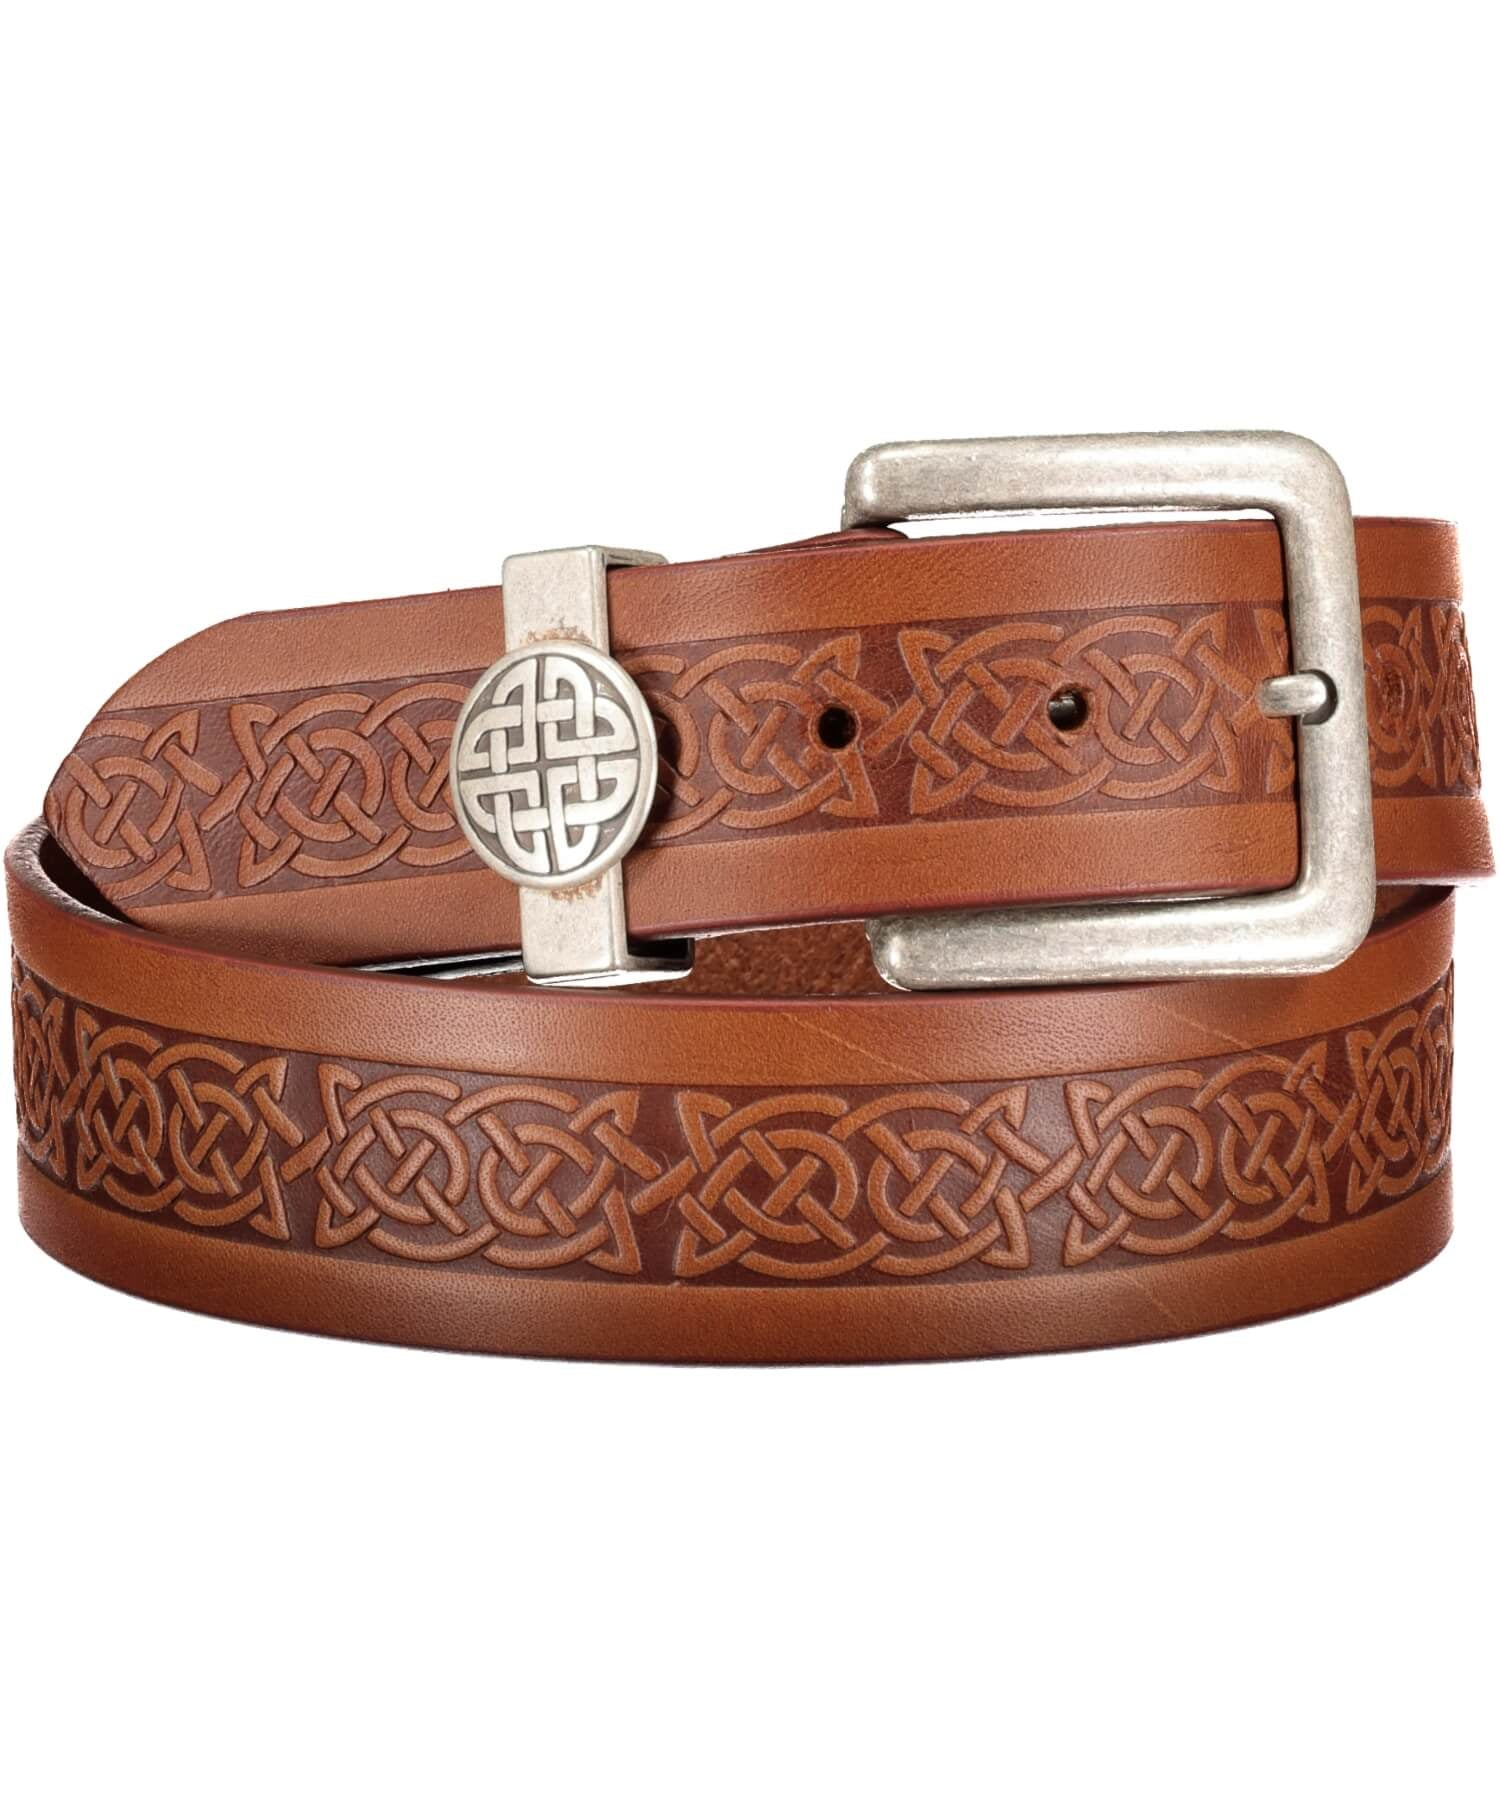 Asgard Jeans Belt - Brown - [Lee River] - Leather Belts & Buckles - Irish Gifts